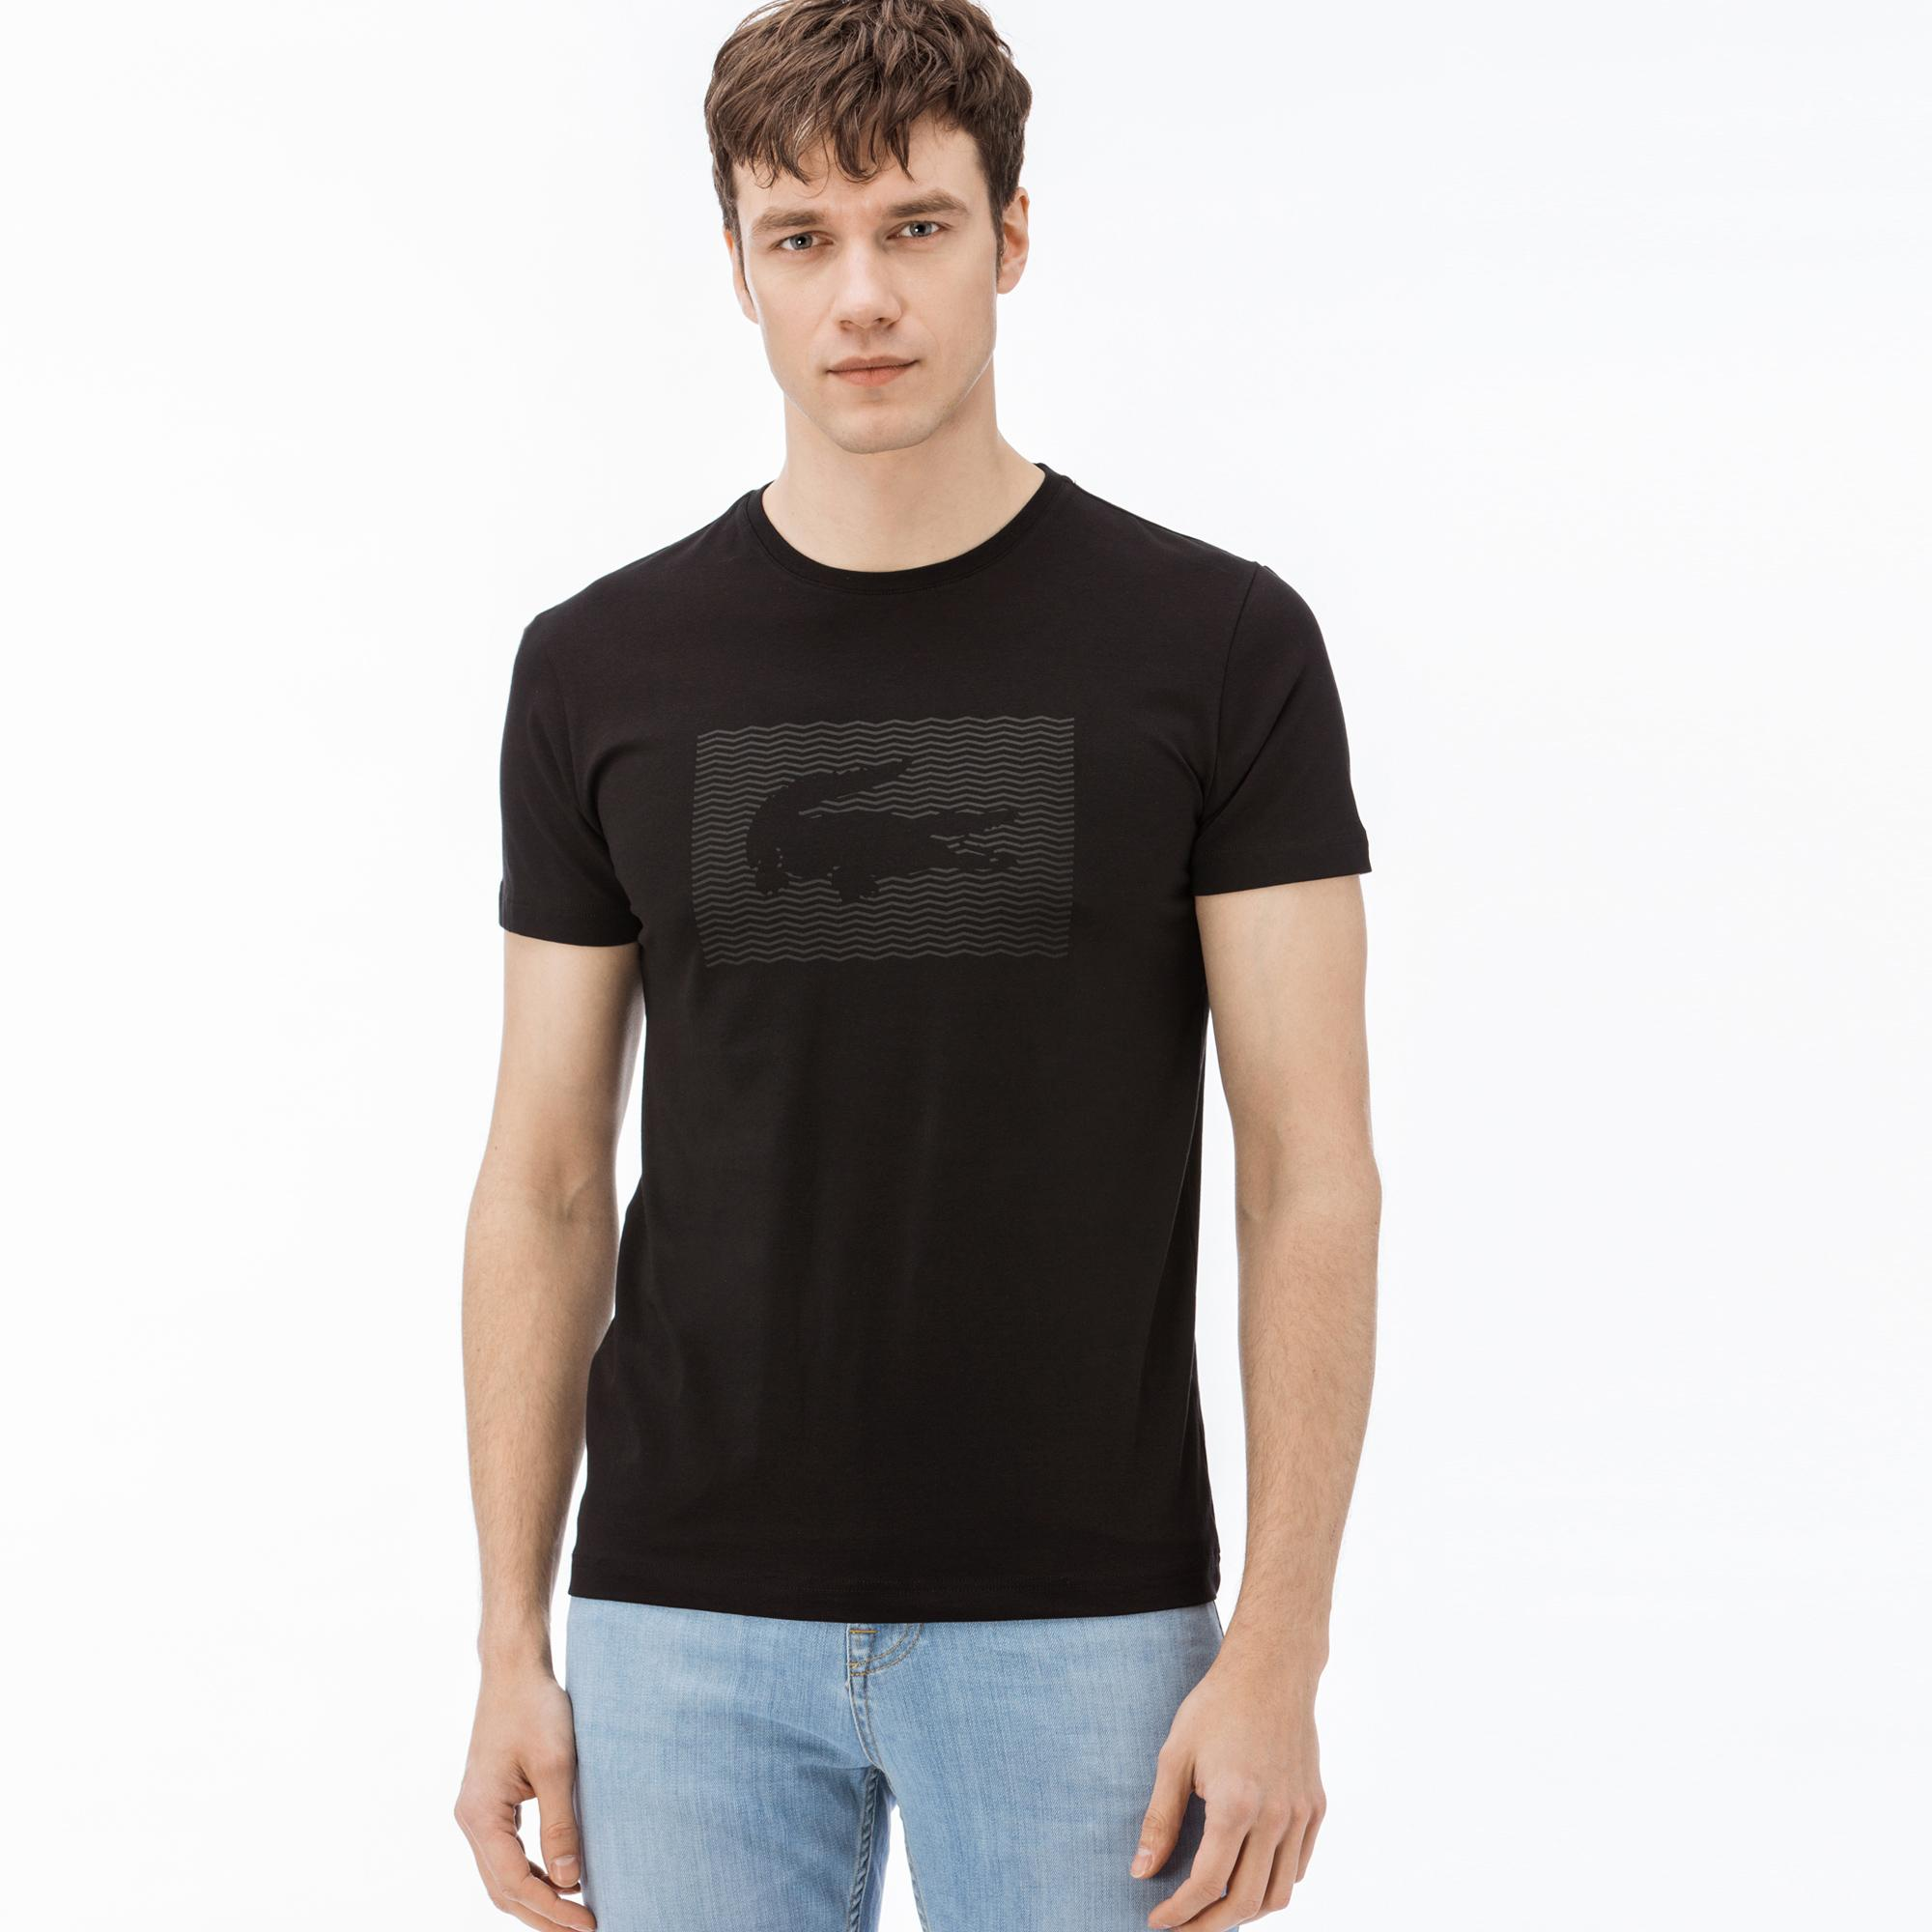 Lacoste Men's Slim Fit T-Shirts